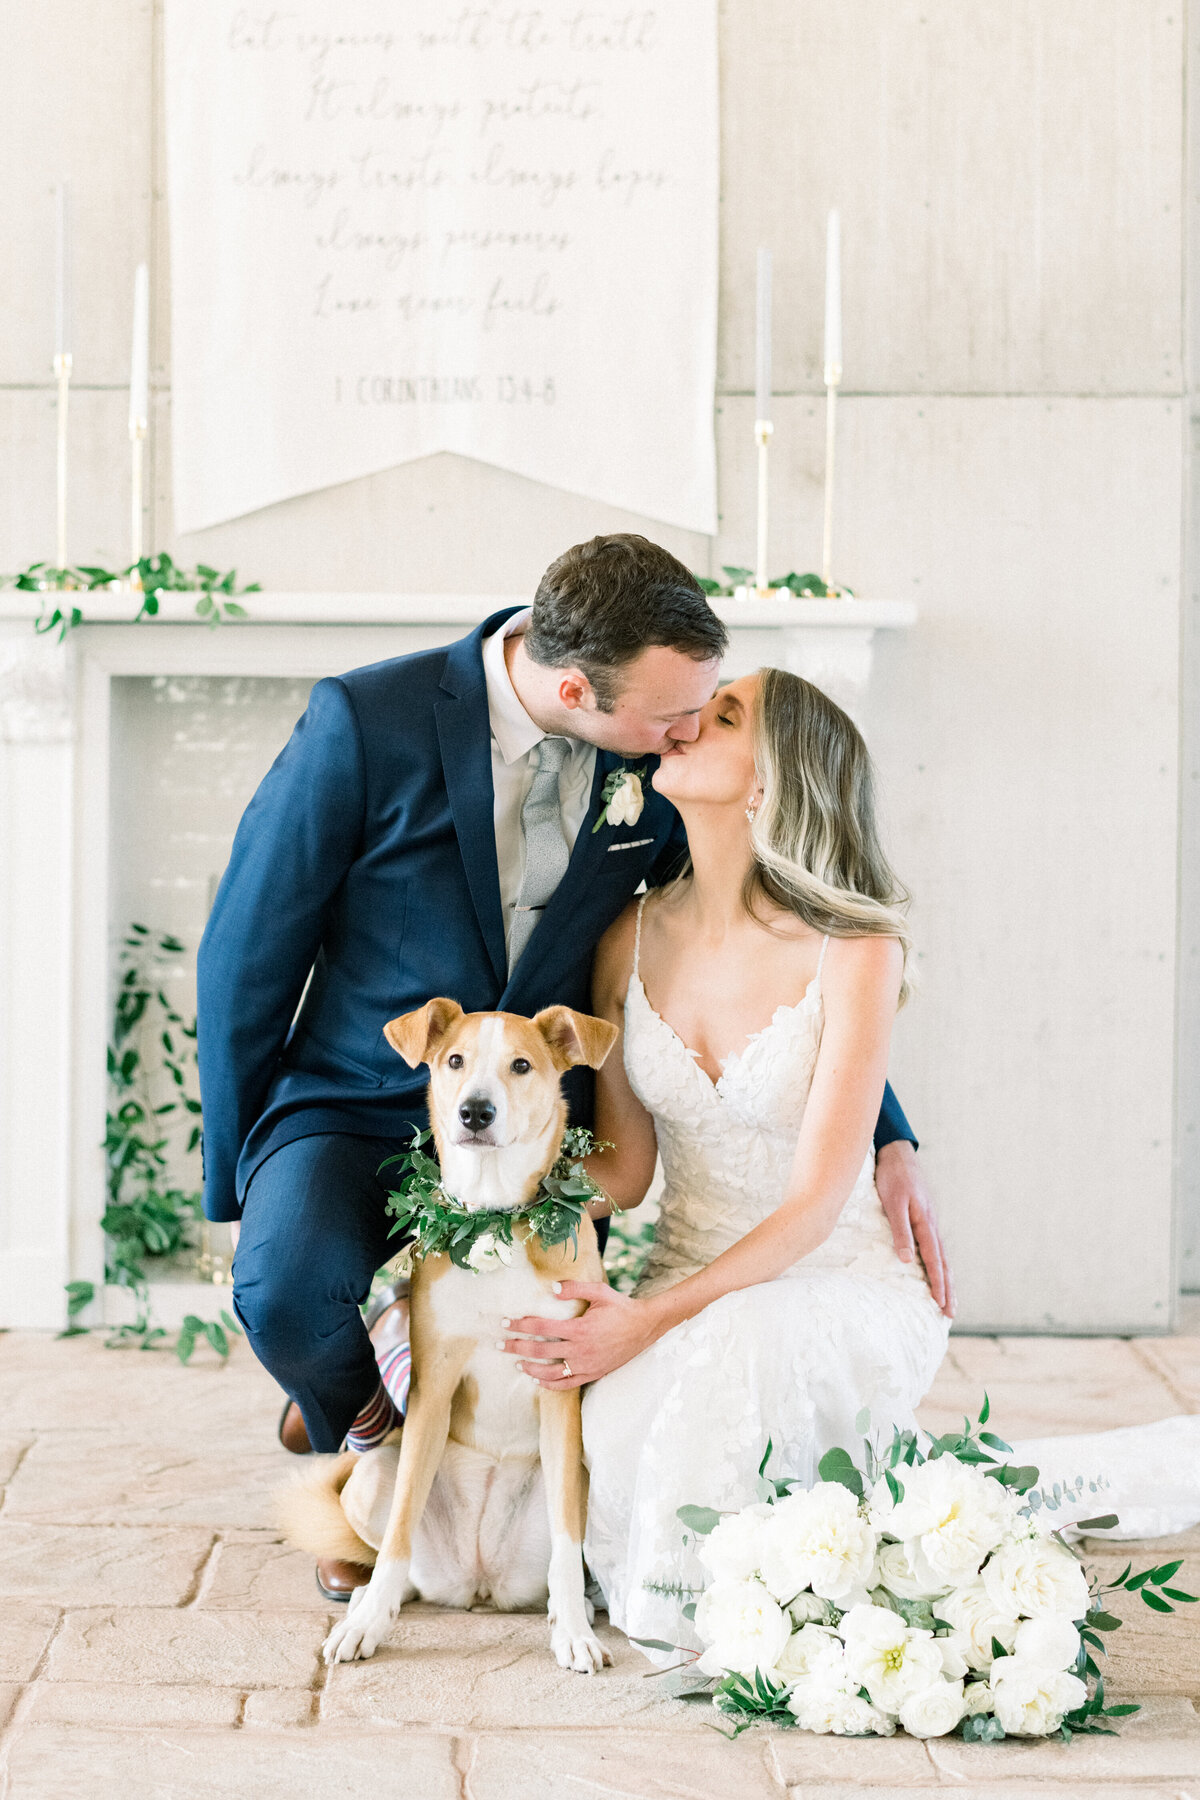 Blacksmith Main Photographer, Blacksmith Main Wedding photos, Brainerd wedding photographer, Minnesota wedding photographer, Minneapolis wedding photographer, MN fine art photographer, Luminary MN wedding photographer